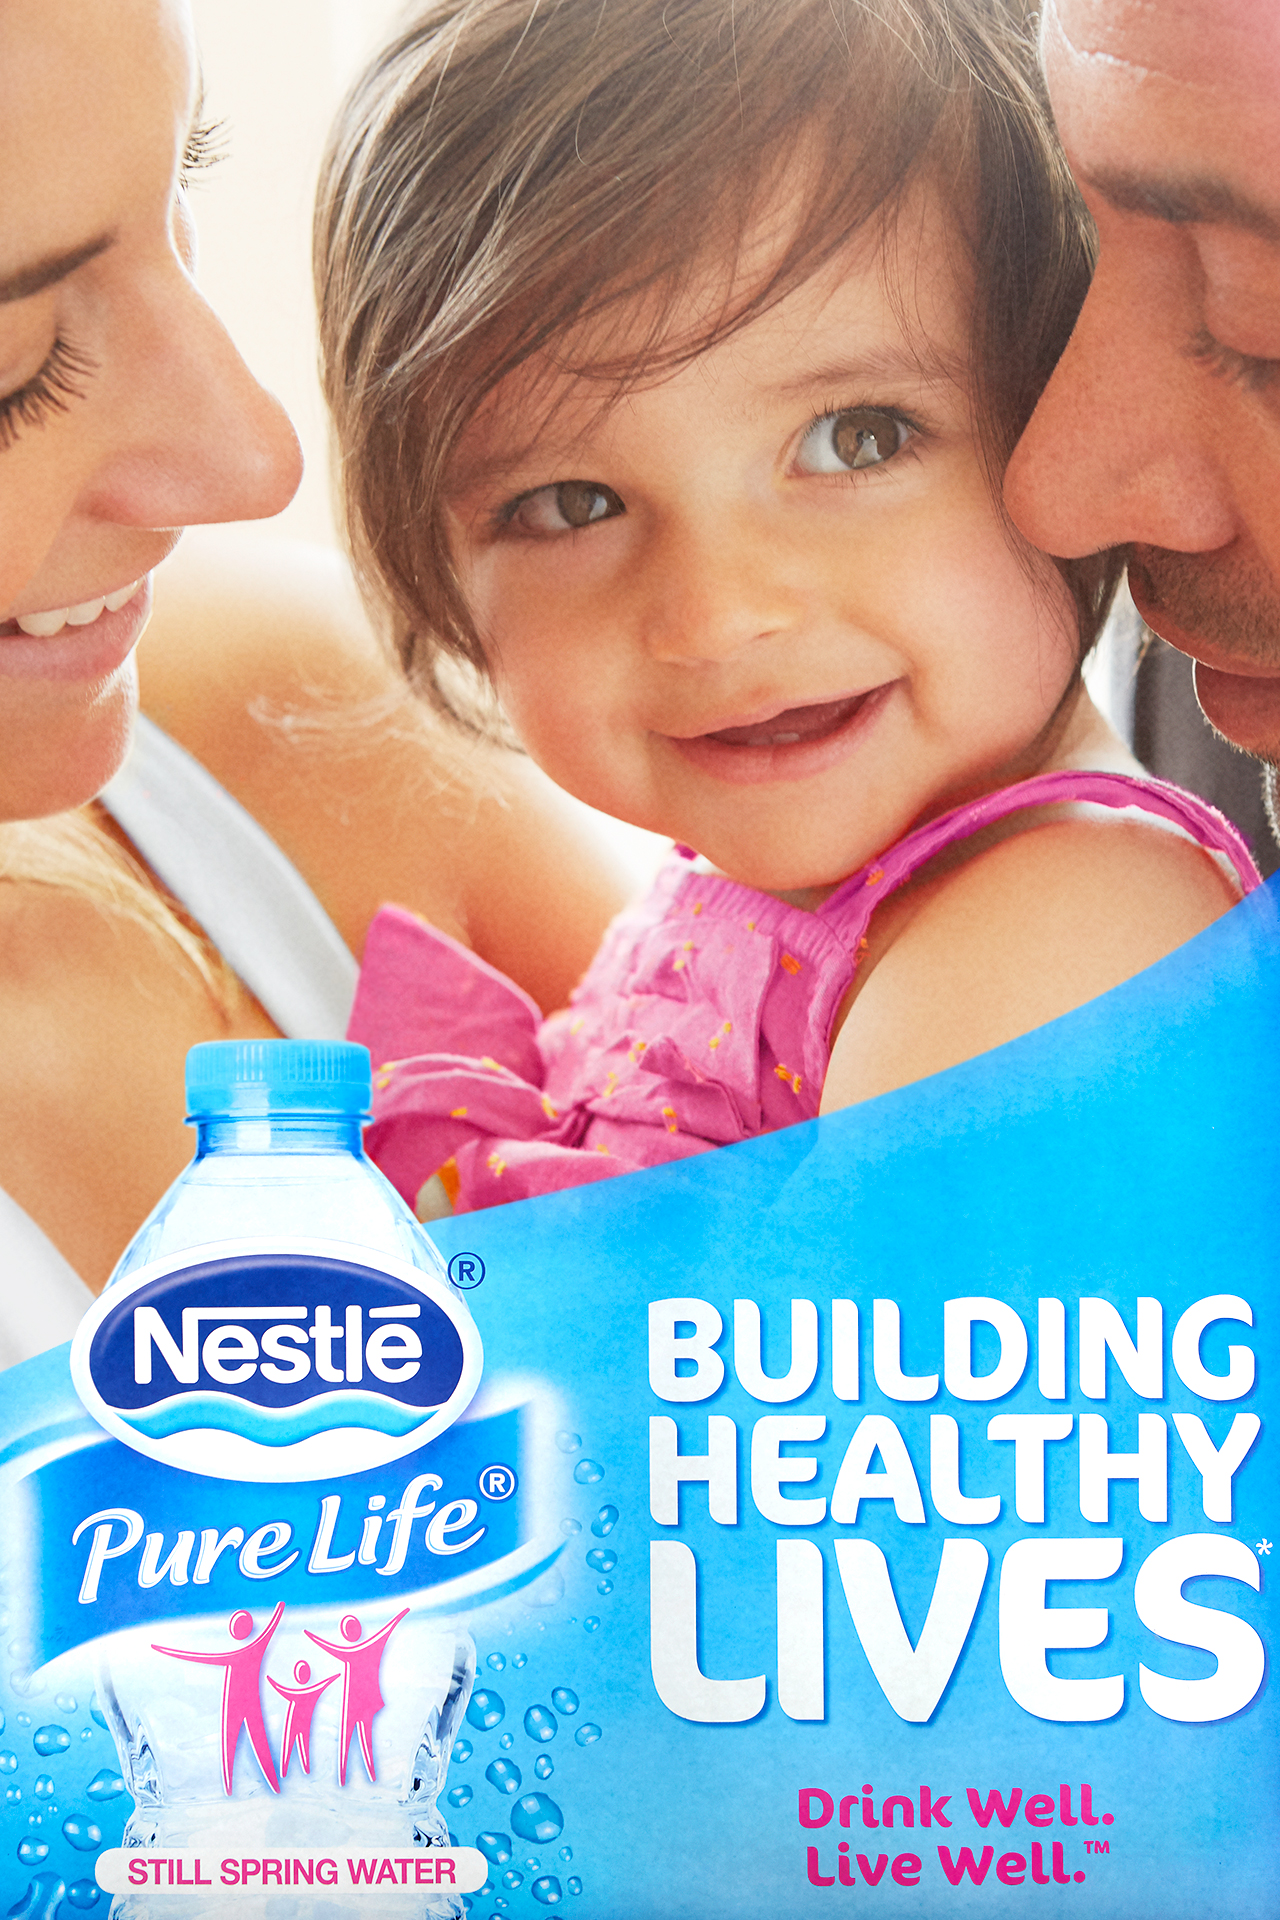 Nestle family bonding together with young toddler